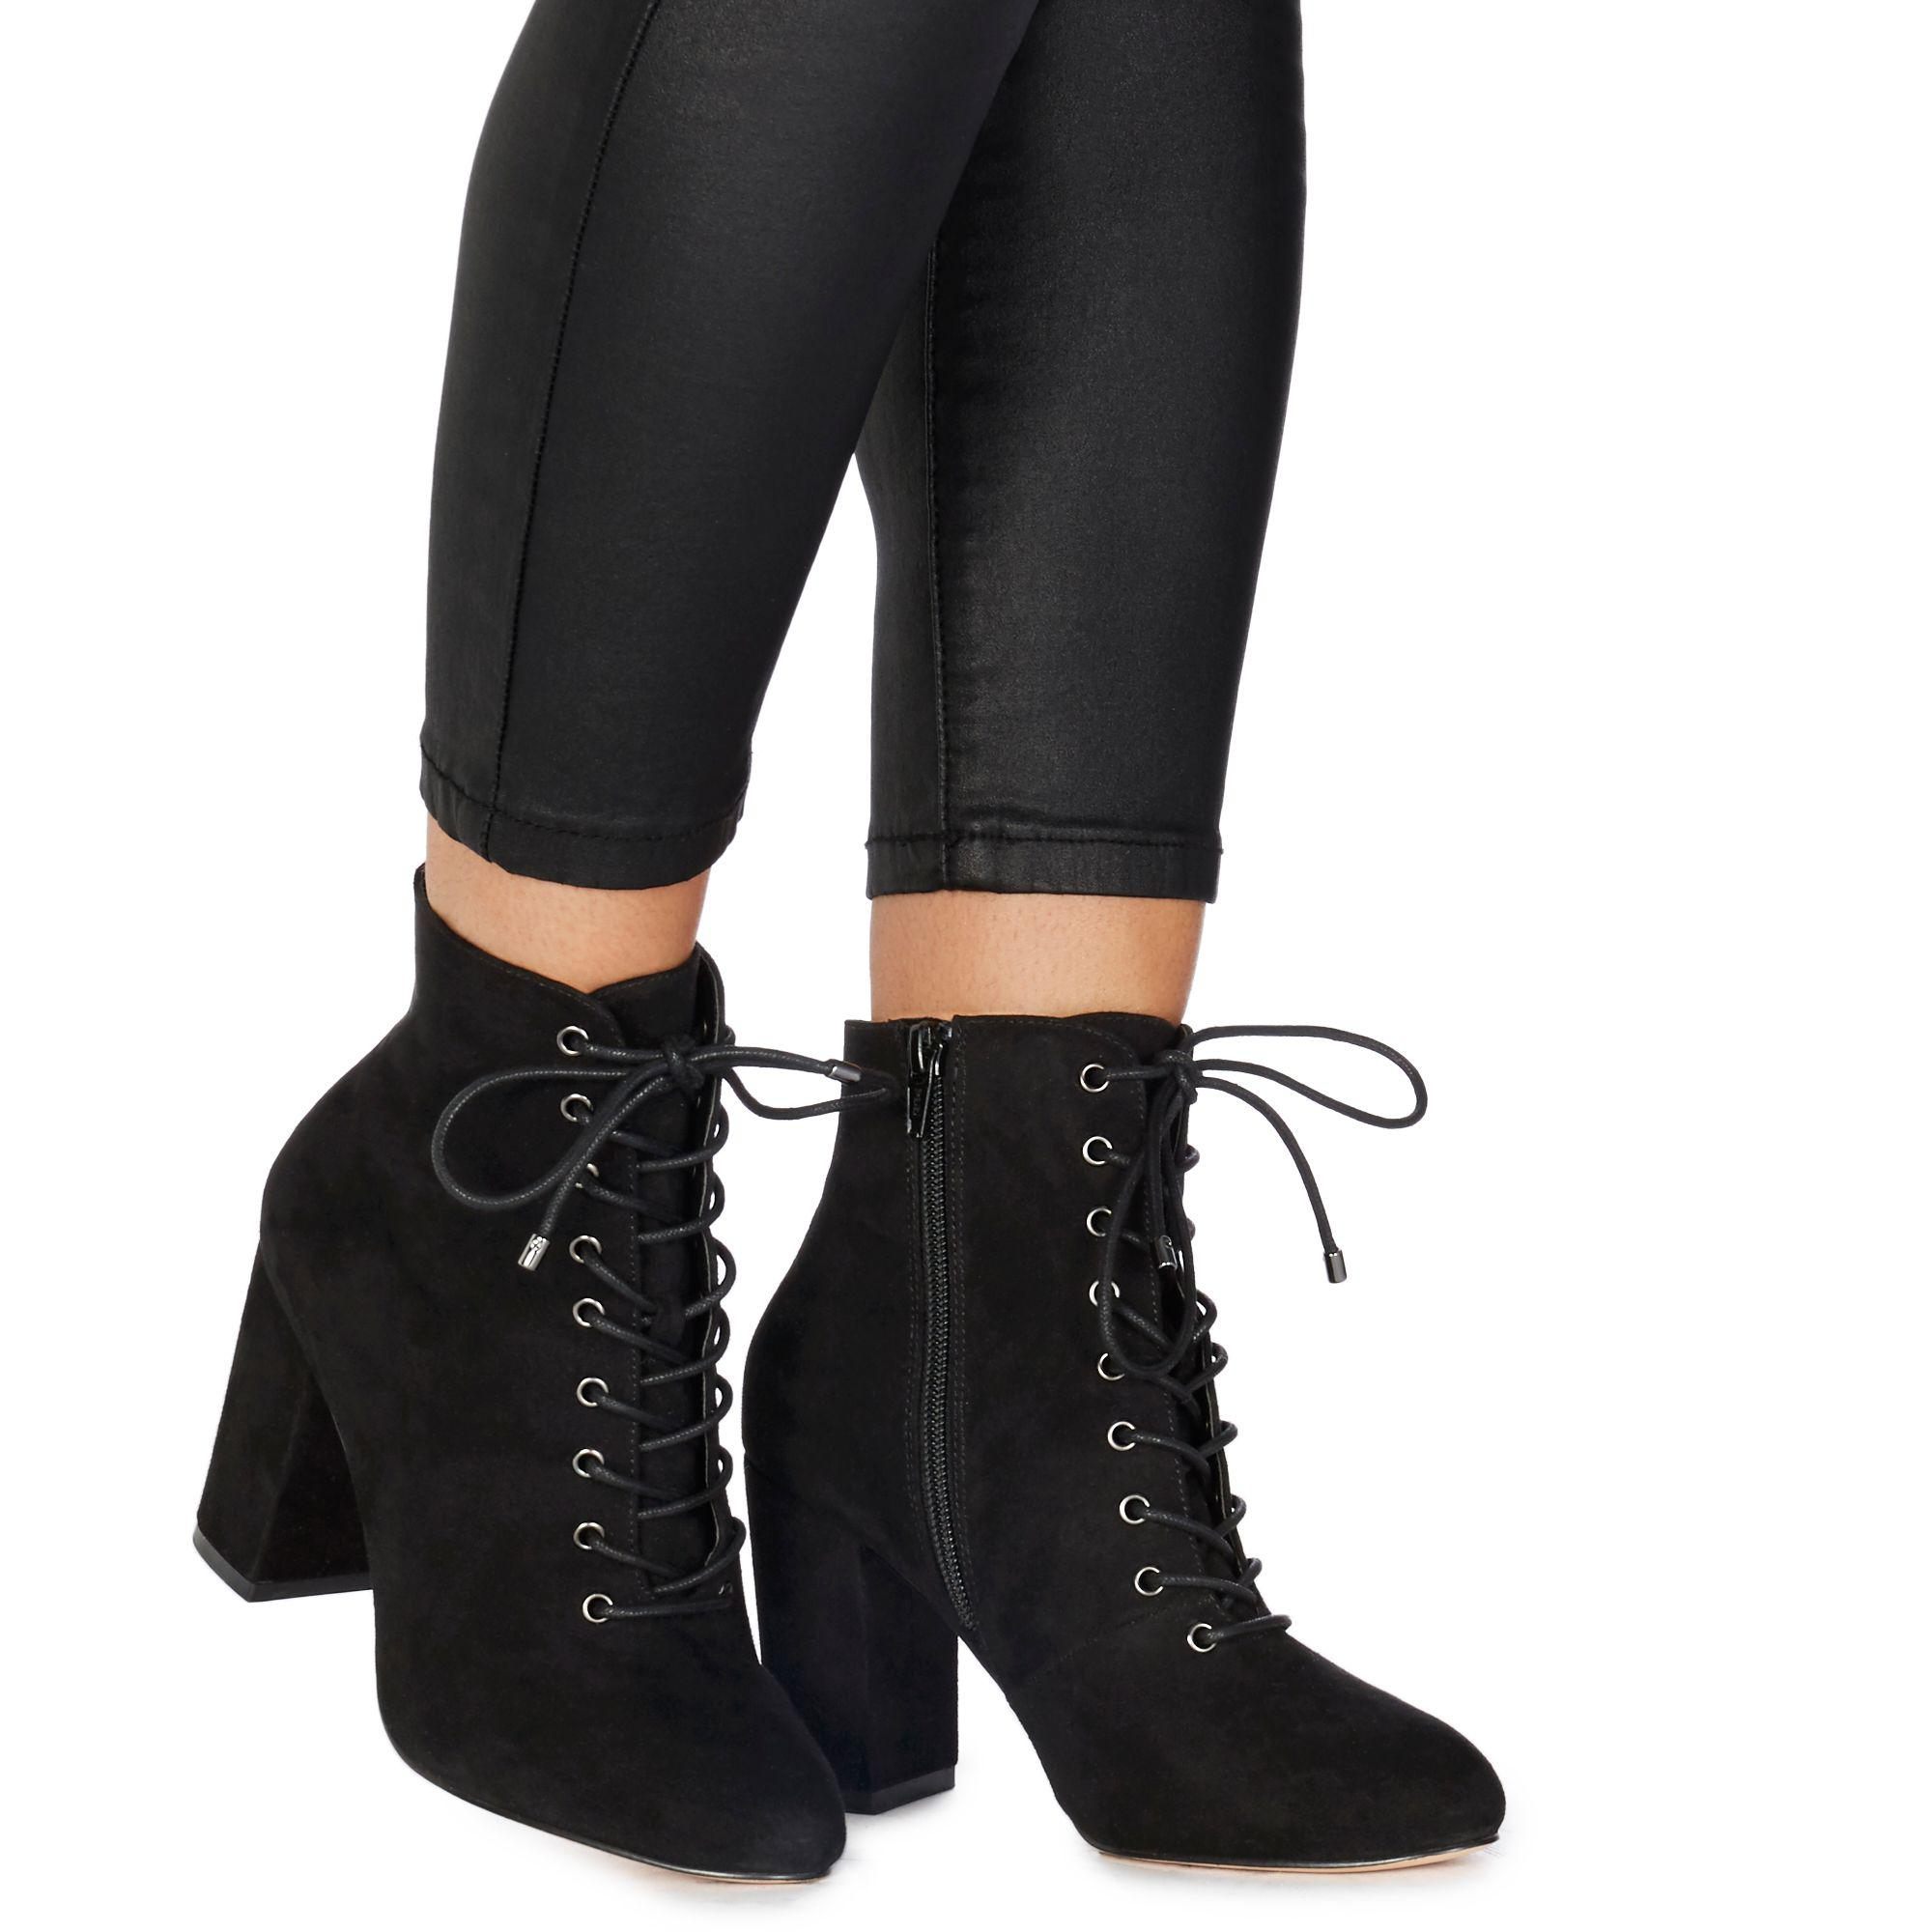 c825adb5ee Faith Black Suedette 'barb' High Block Heel Ankle Boots in Black - Lyst